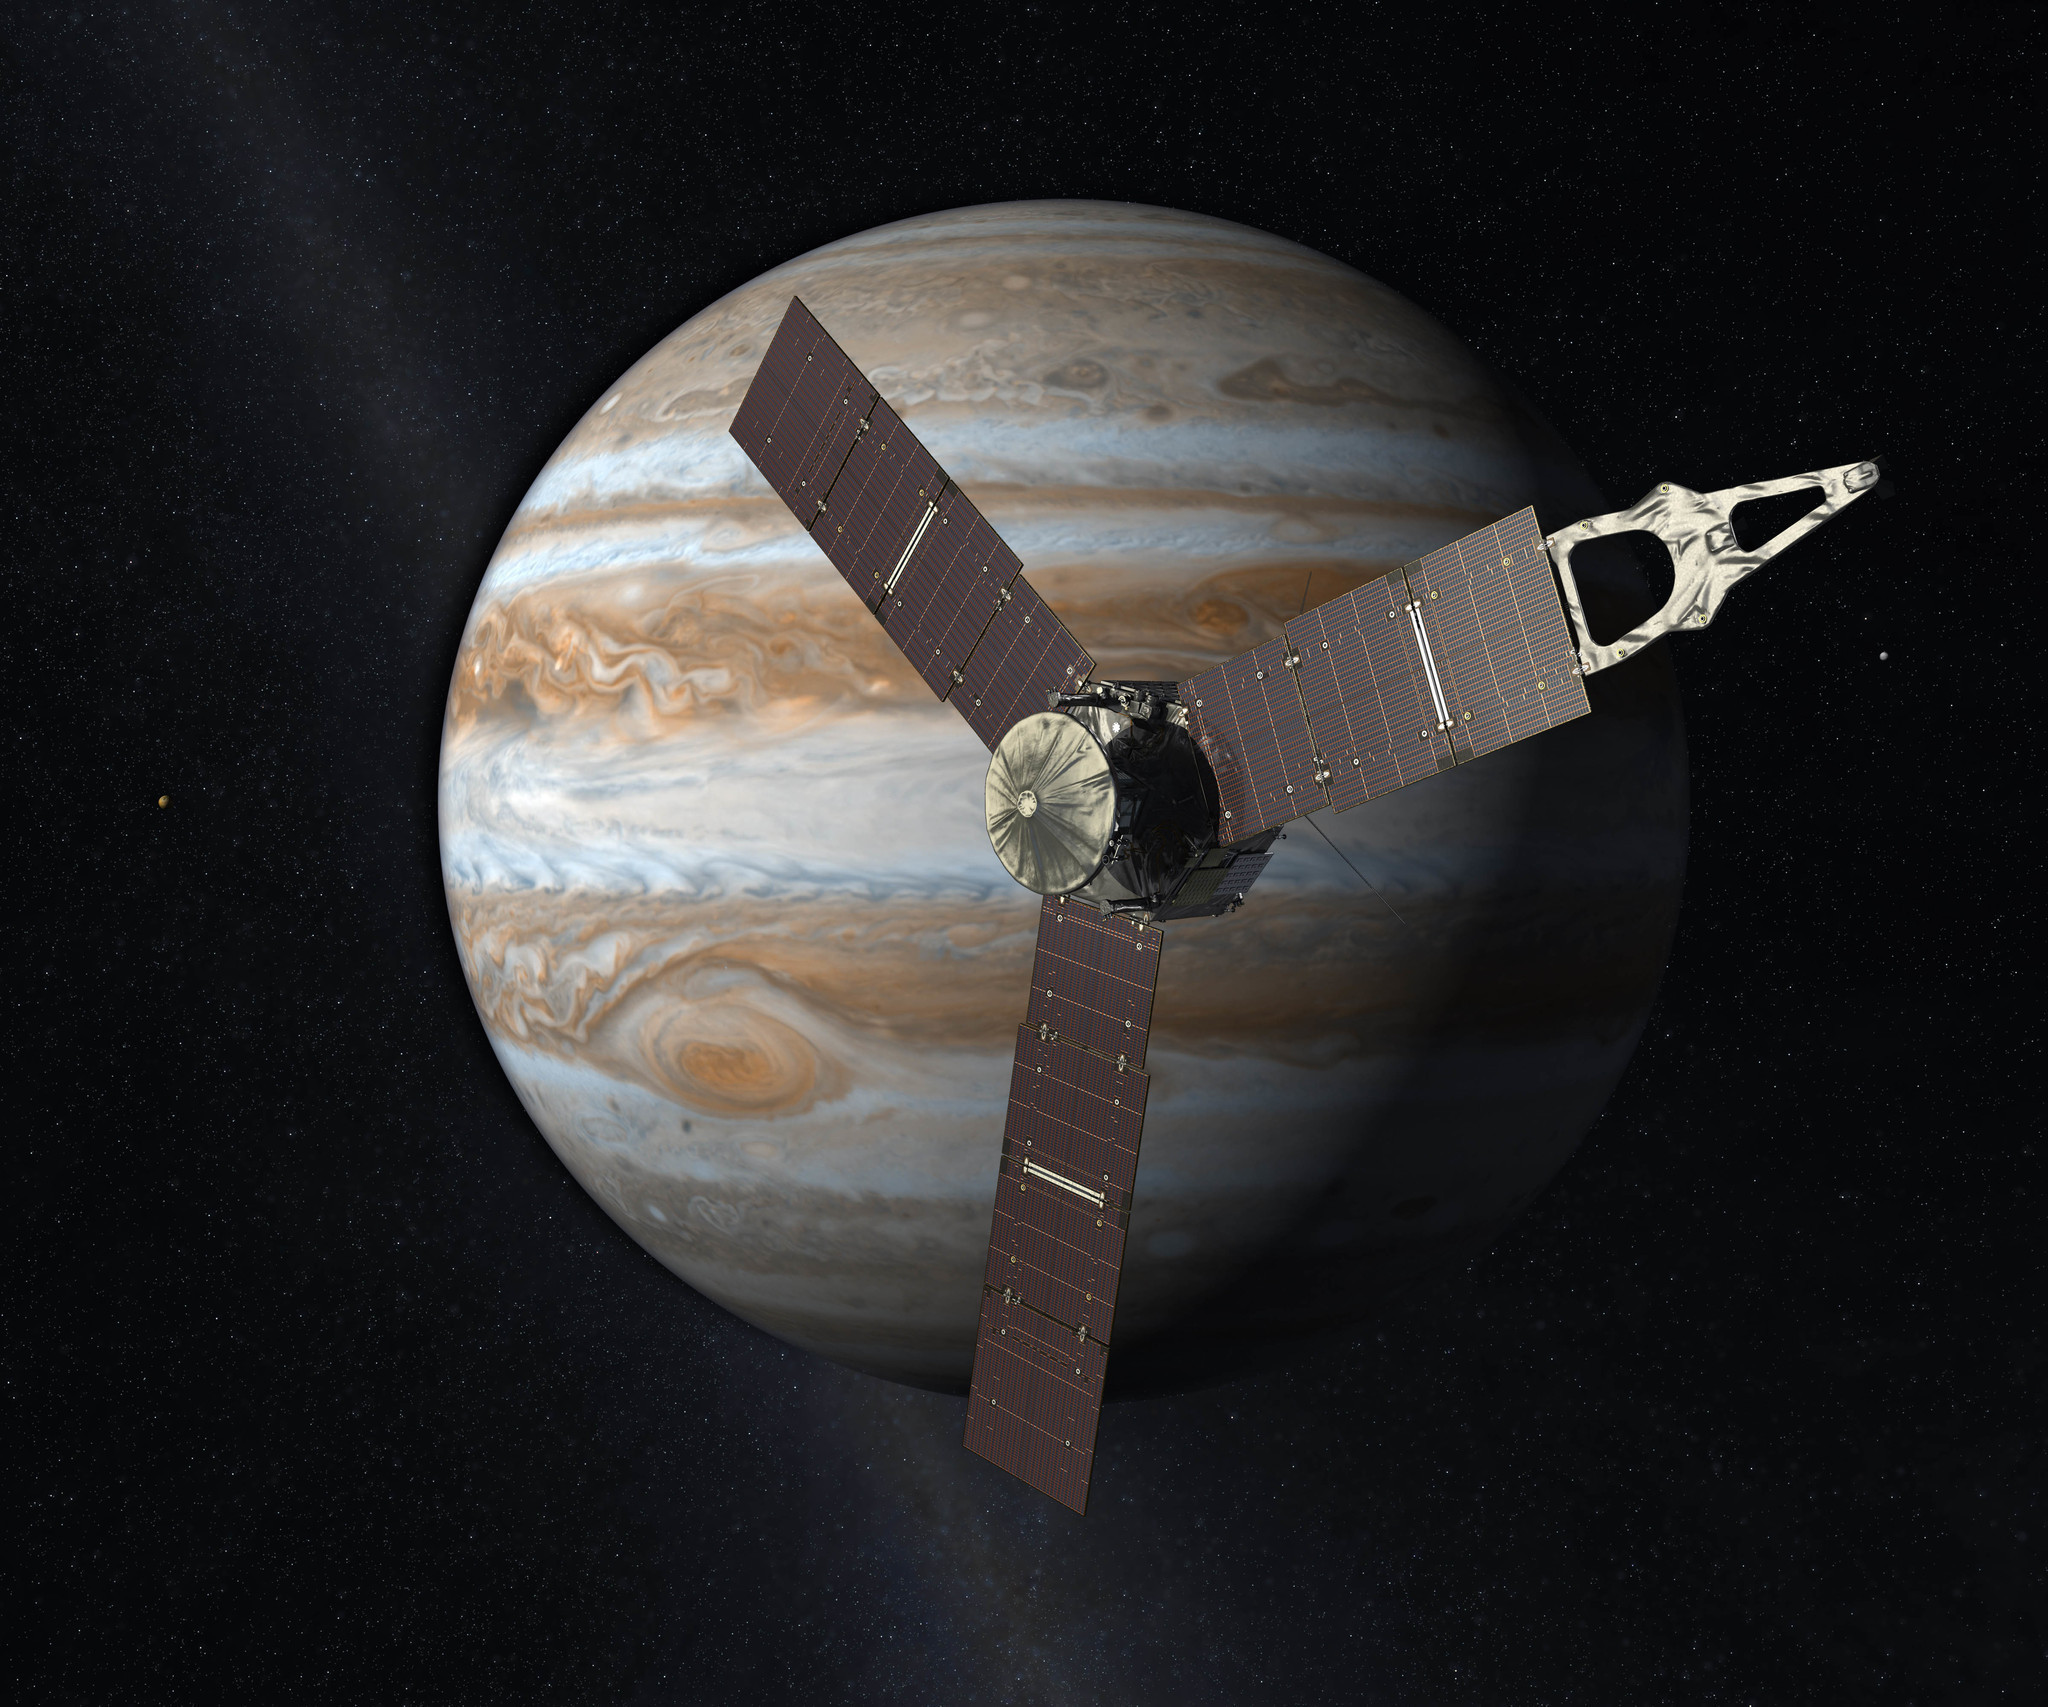 Juno spacecraft slips into safe mode, putting science on hold - Orlando Sentinel